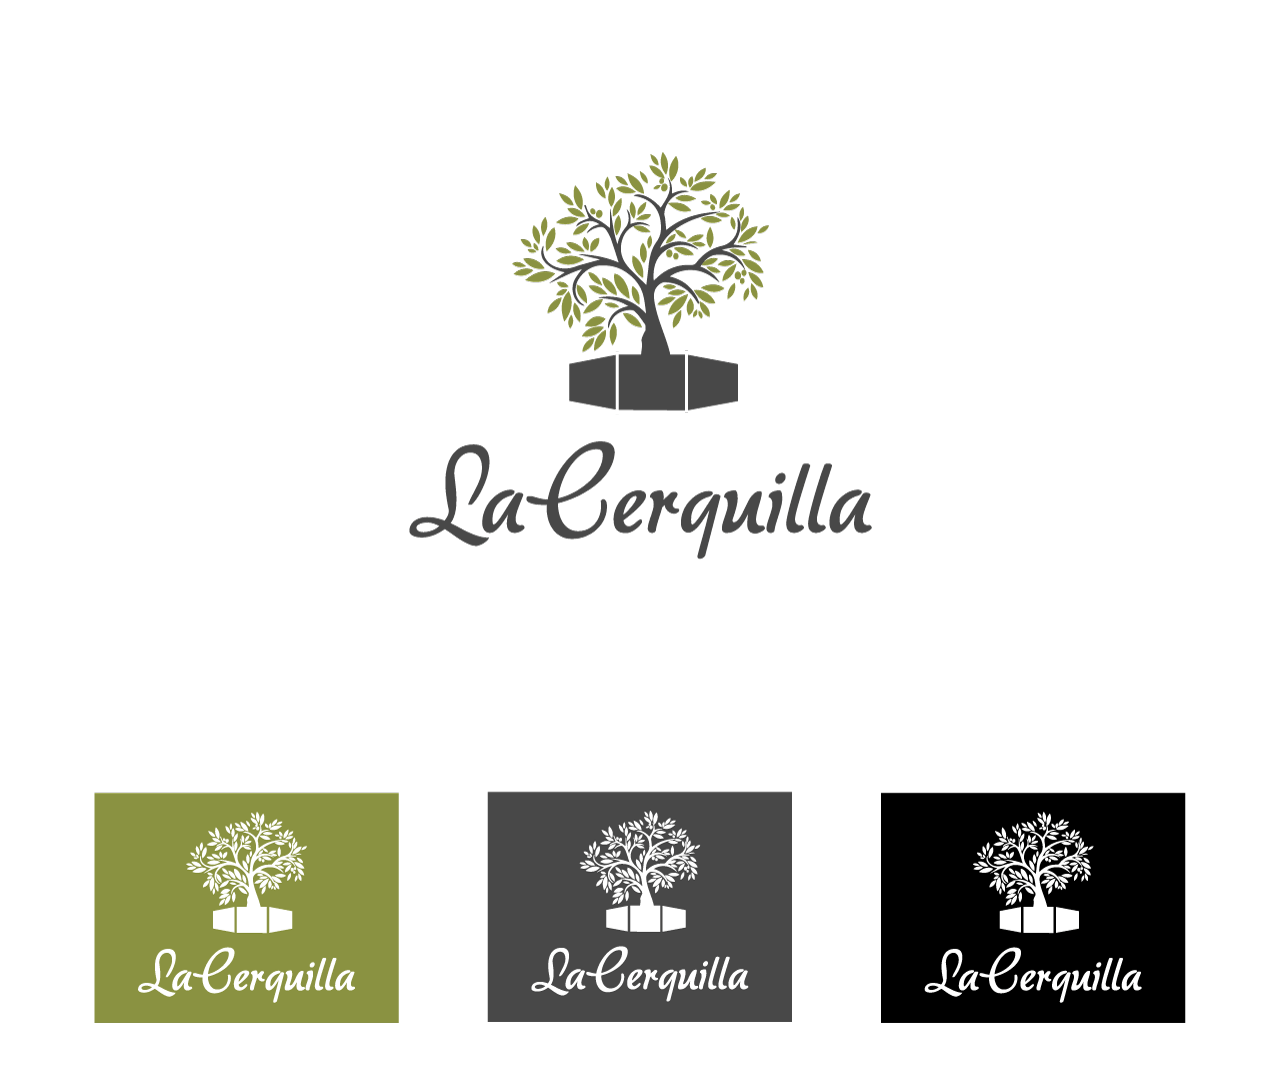 Corporate imagen design for La Cerquilla urbanization